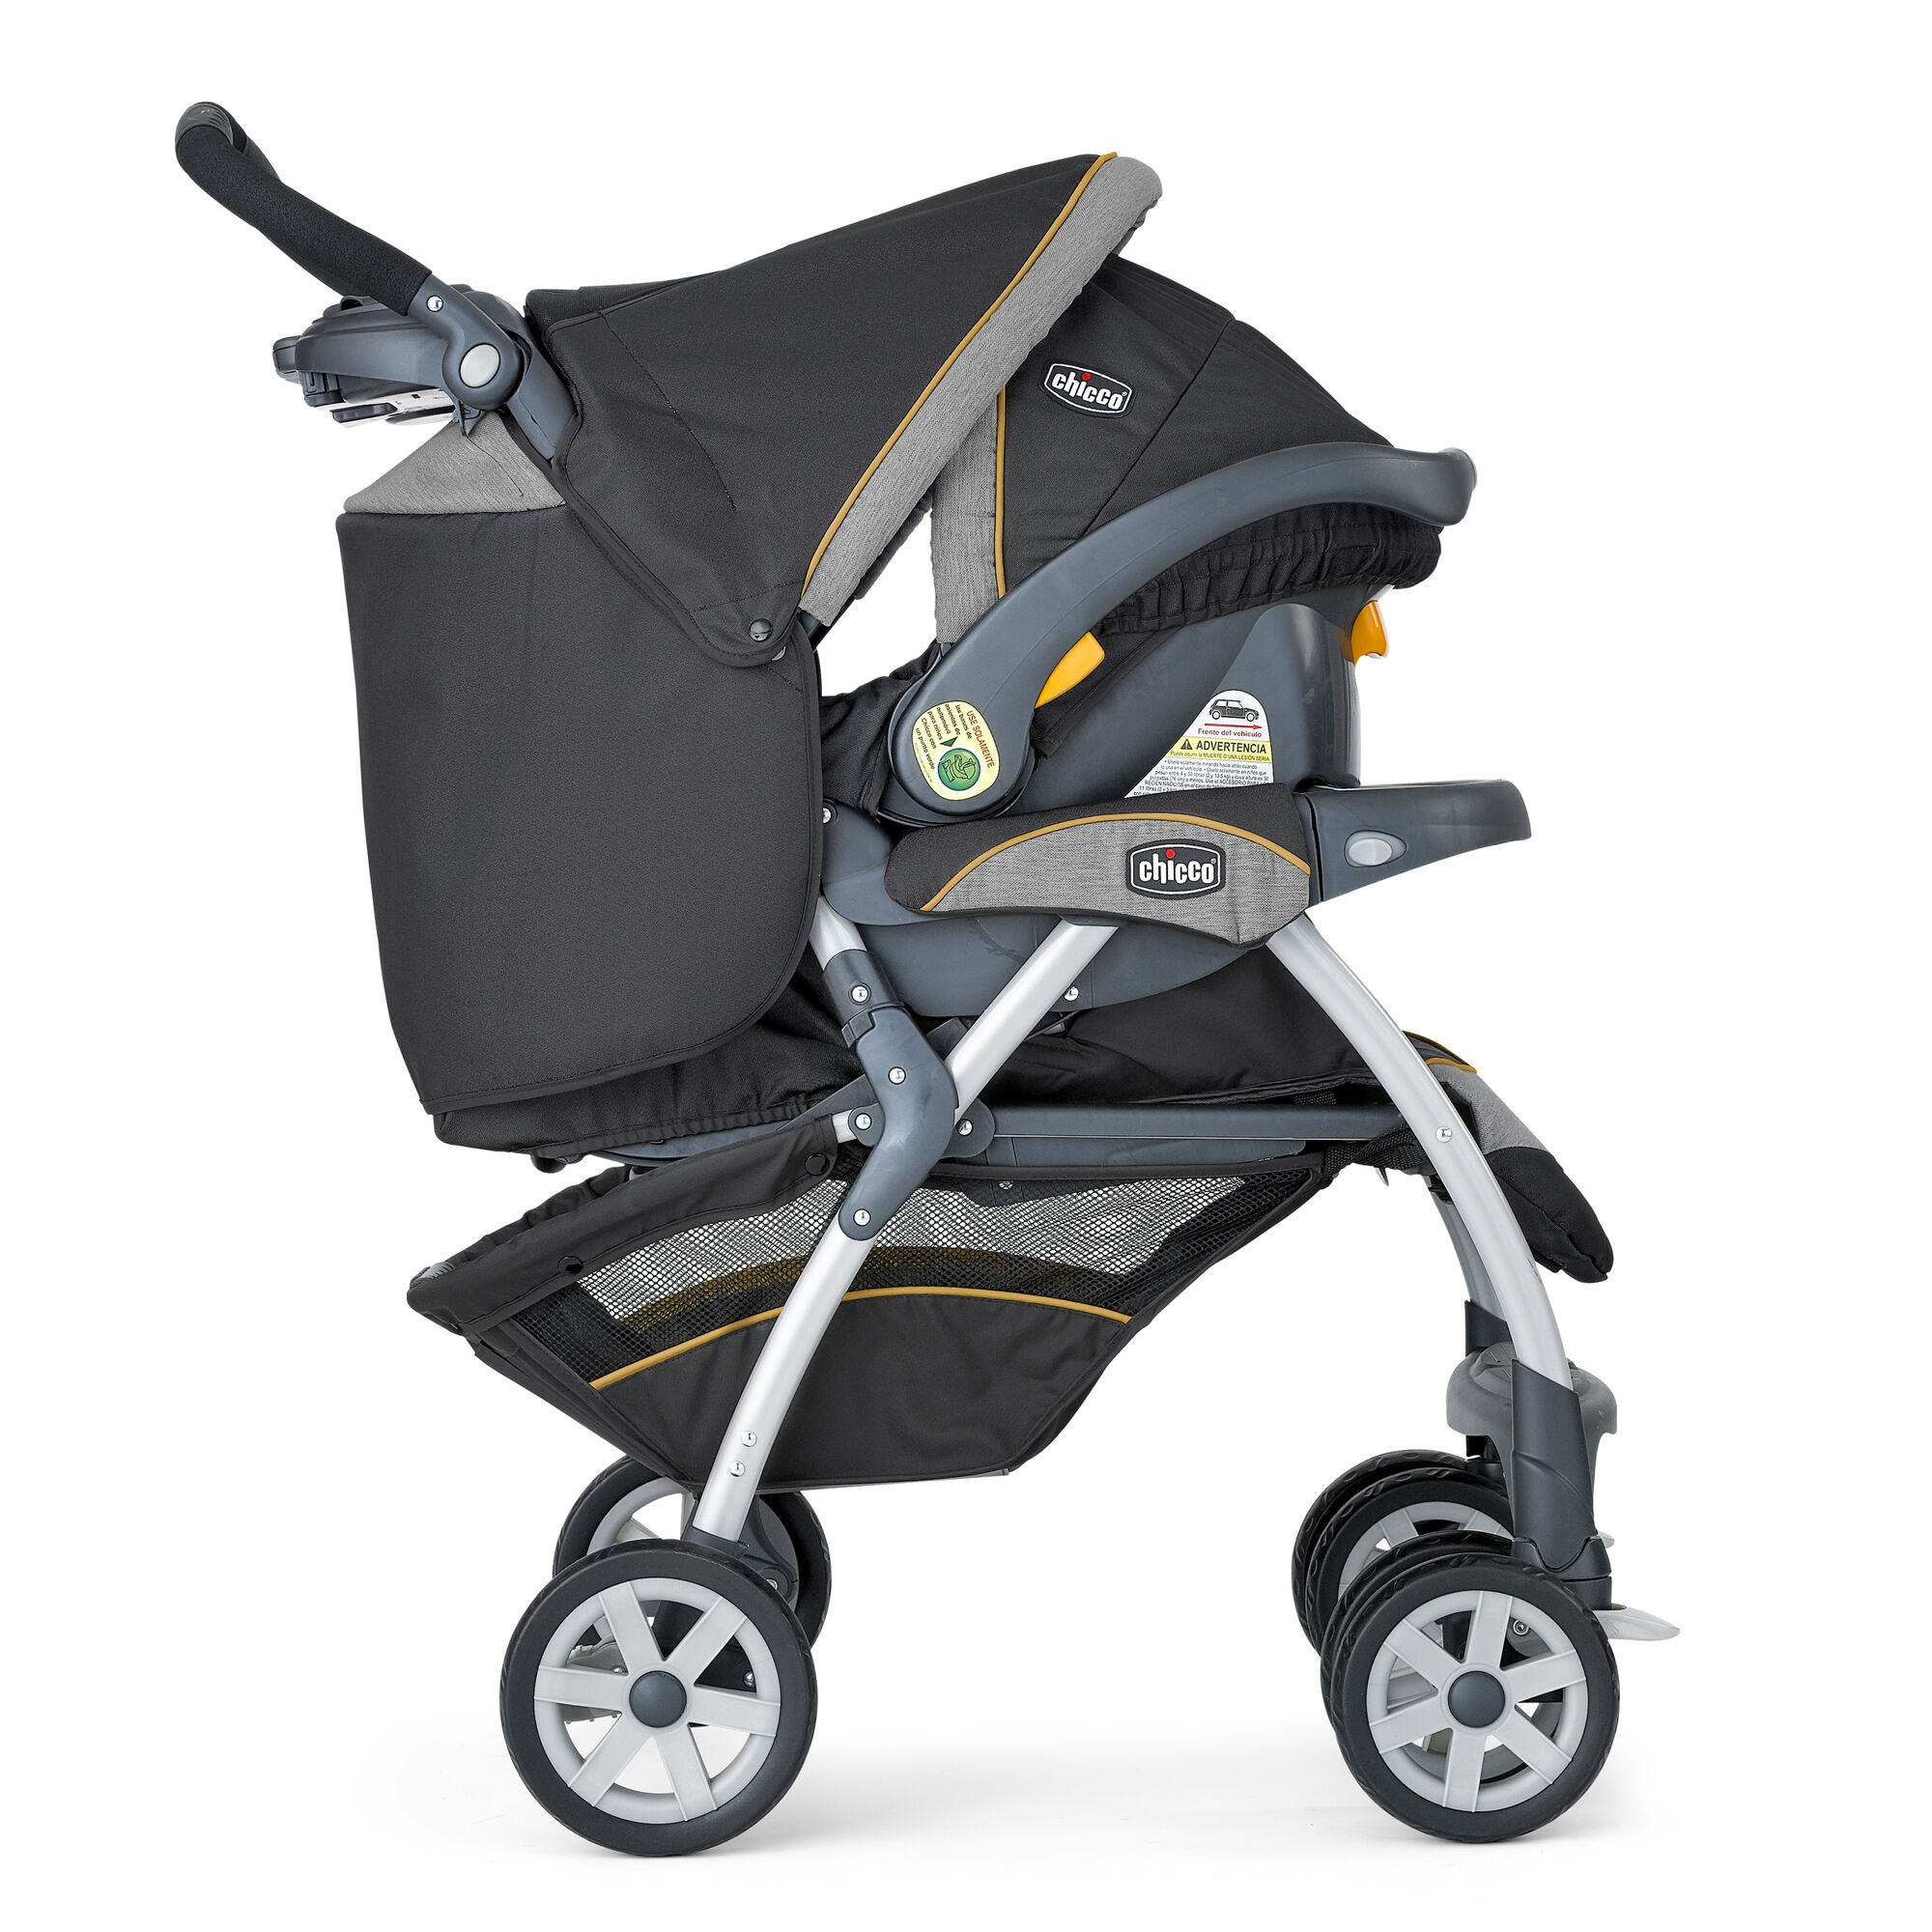 Cortina Stroller and Chicco Cortina KeyFit 30 travel system